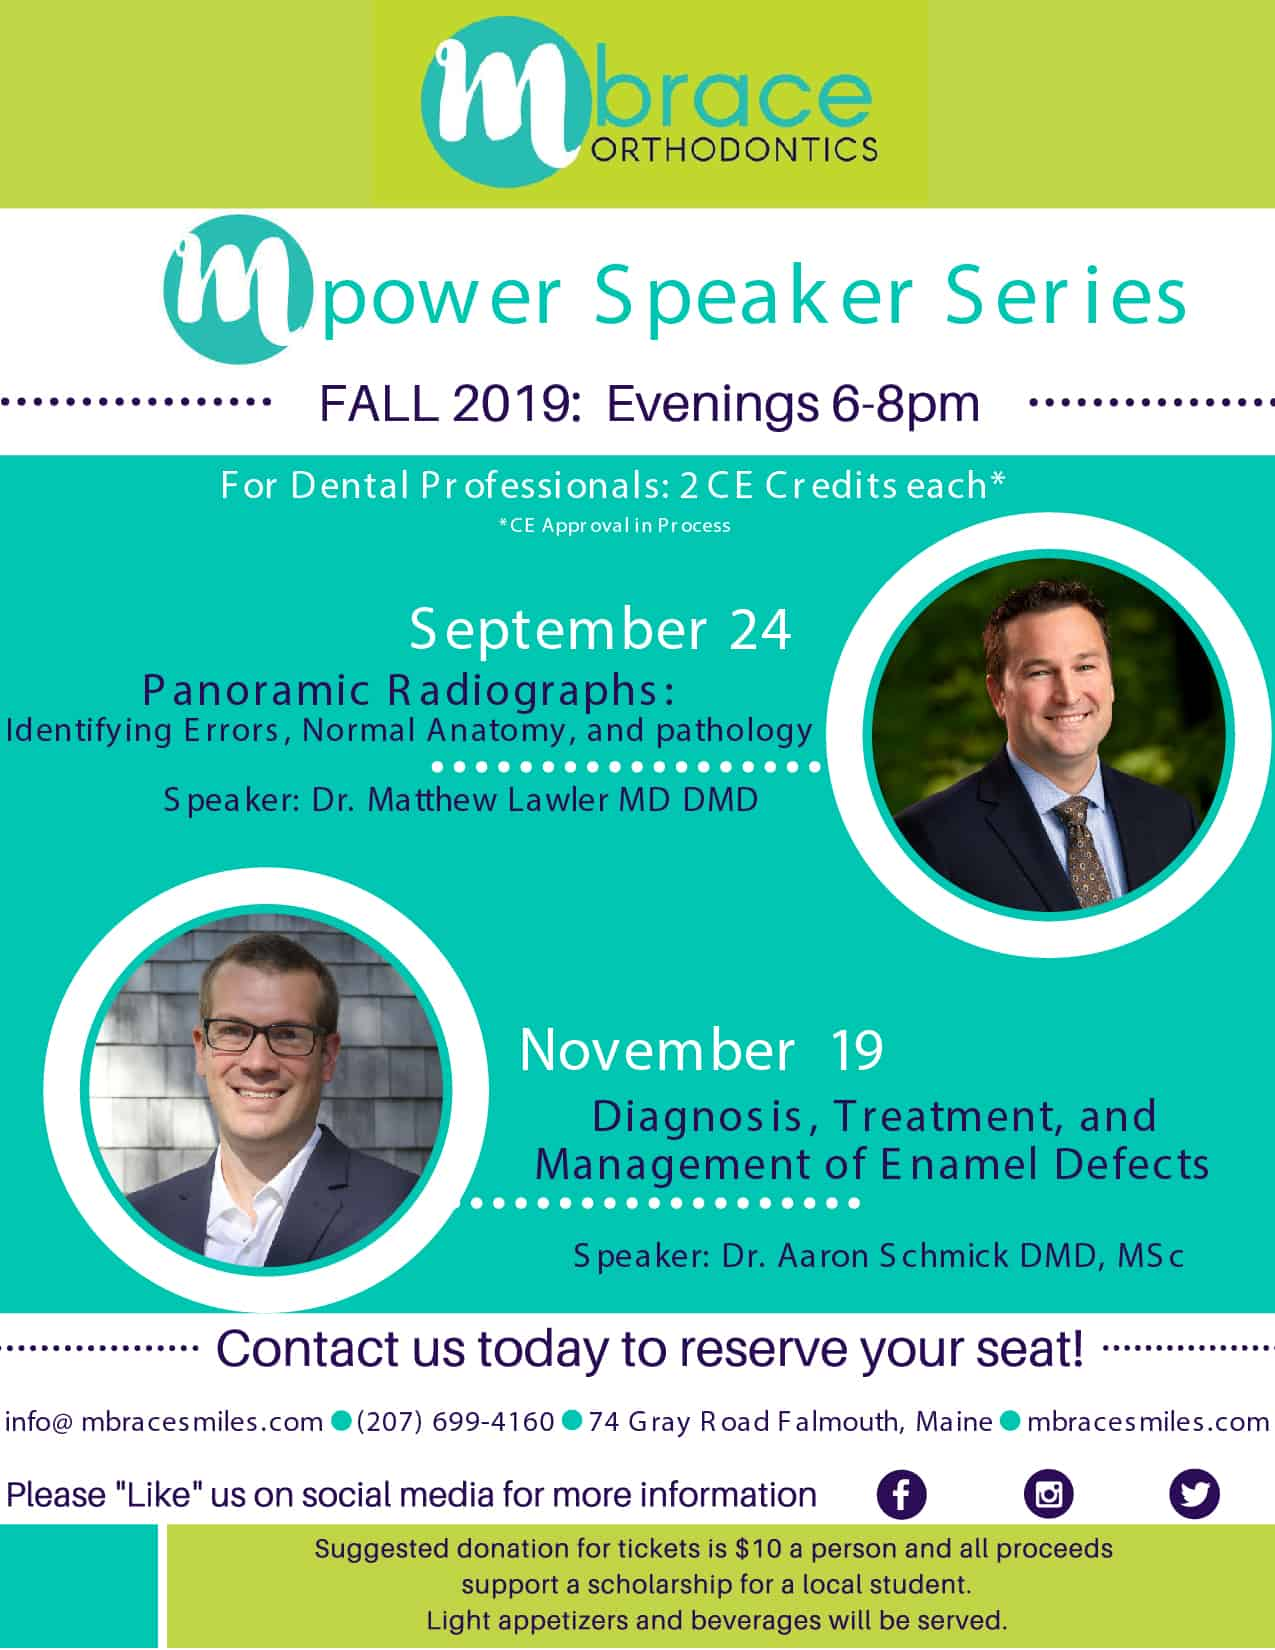 mPower Lecture Series Flyers Fall 2019 01 - Mpower Speaker Series: Fall Schedule 2019